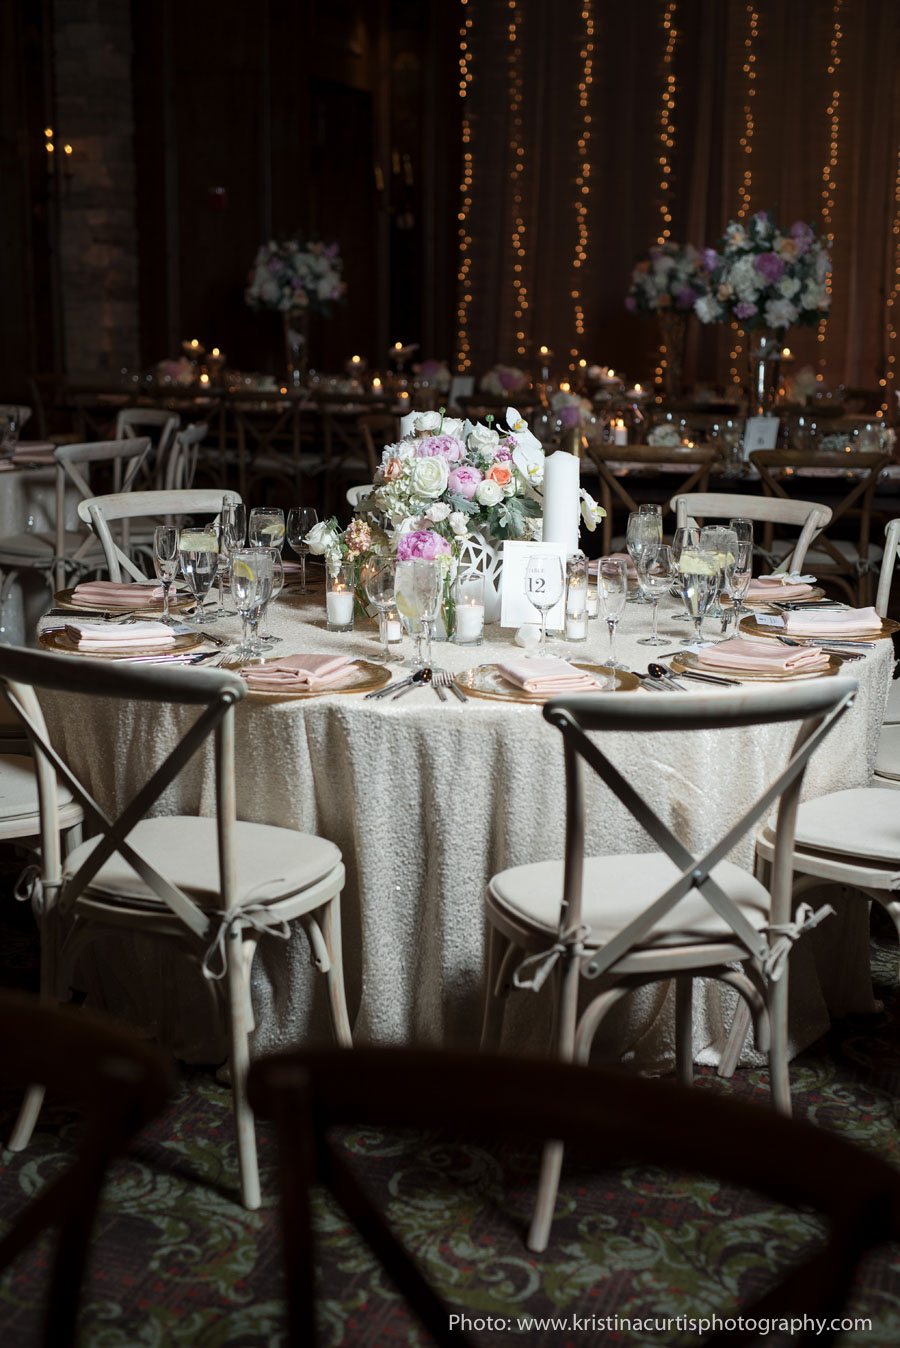 Best Park City Wedding Venue_Winter_Weddings_Stein_Eriksen_Lodge-2-3.jpg